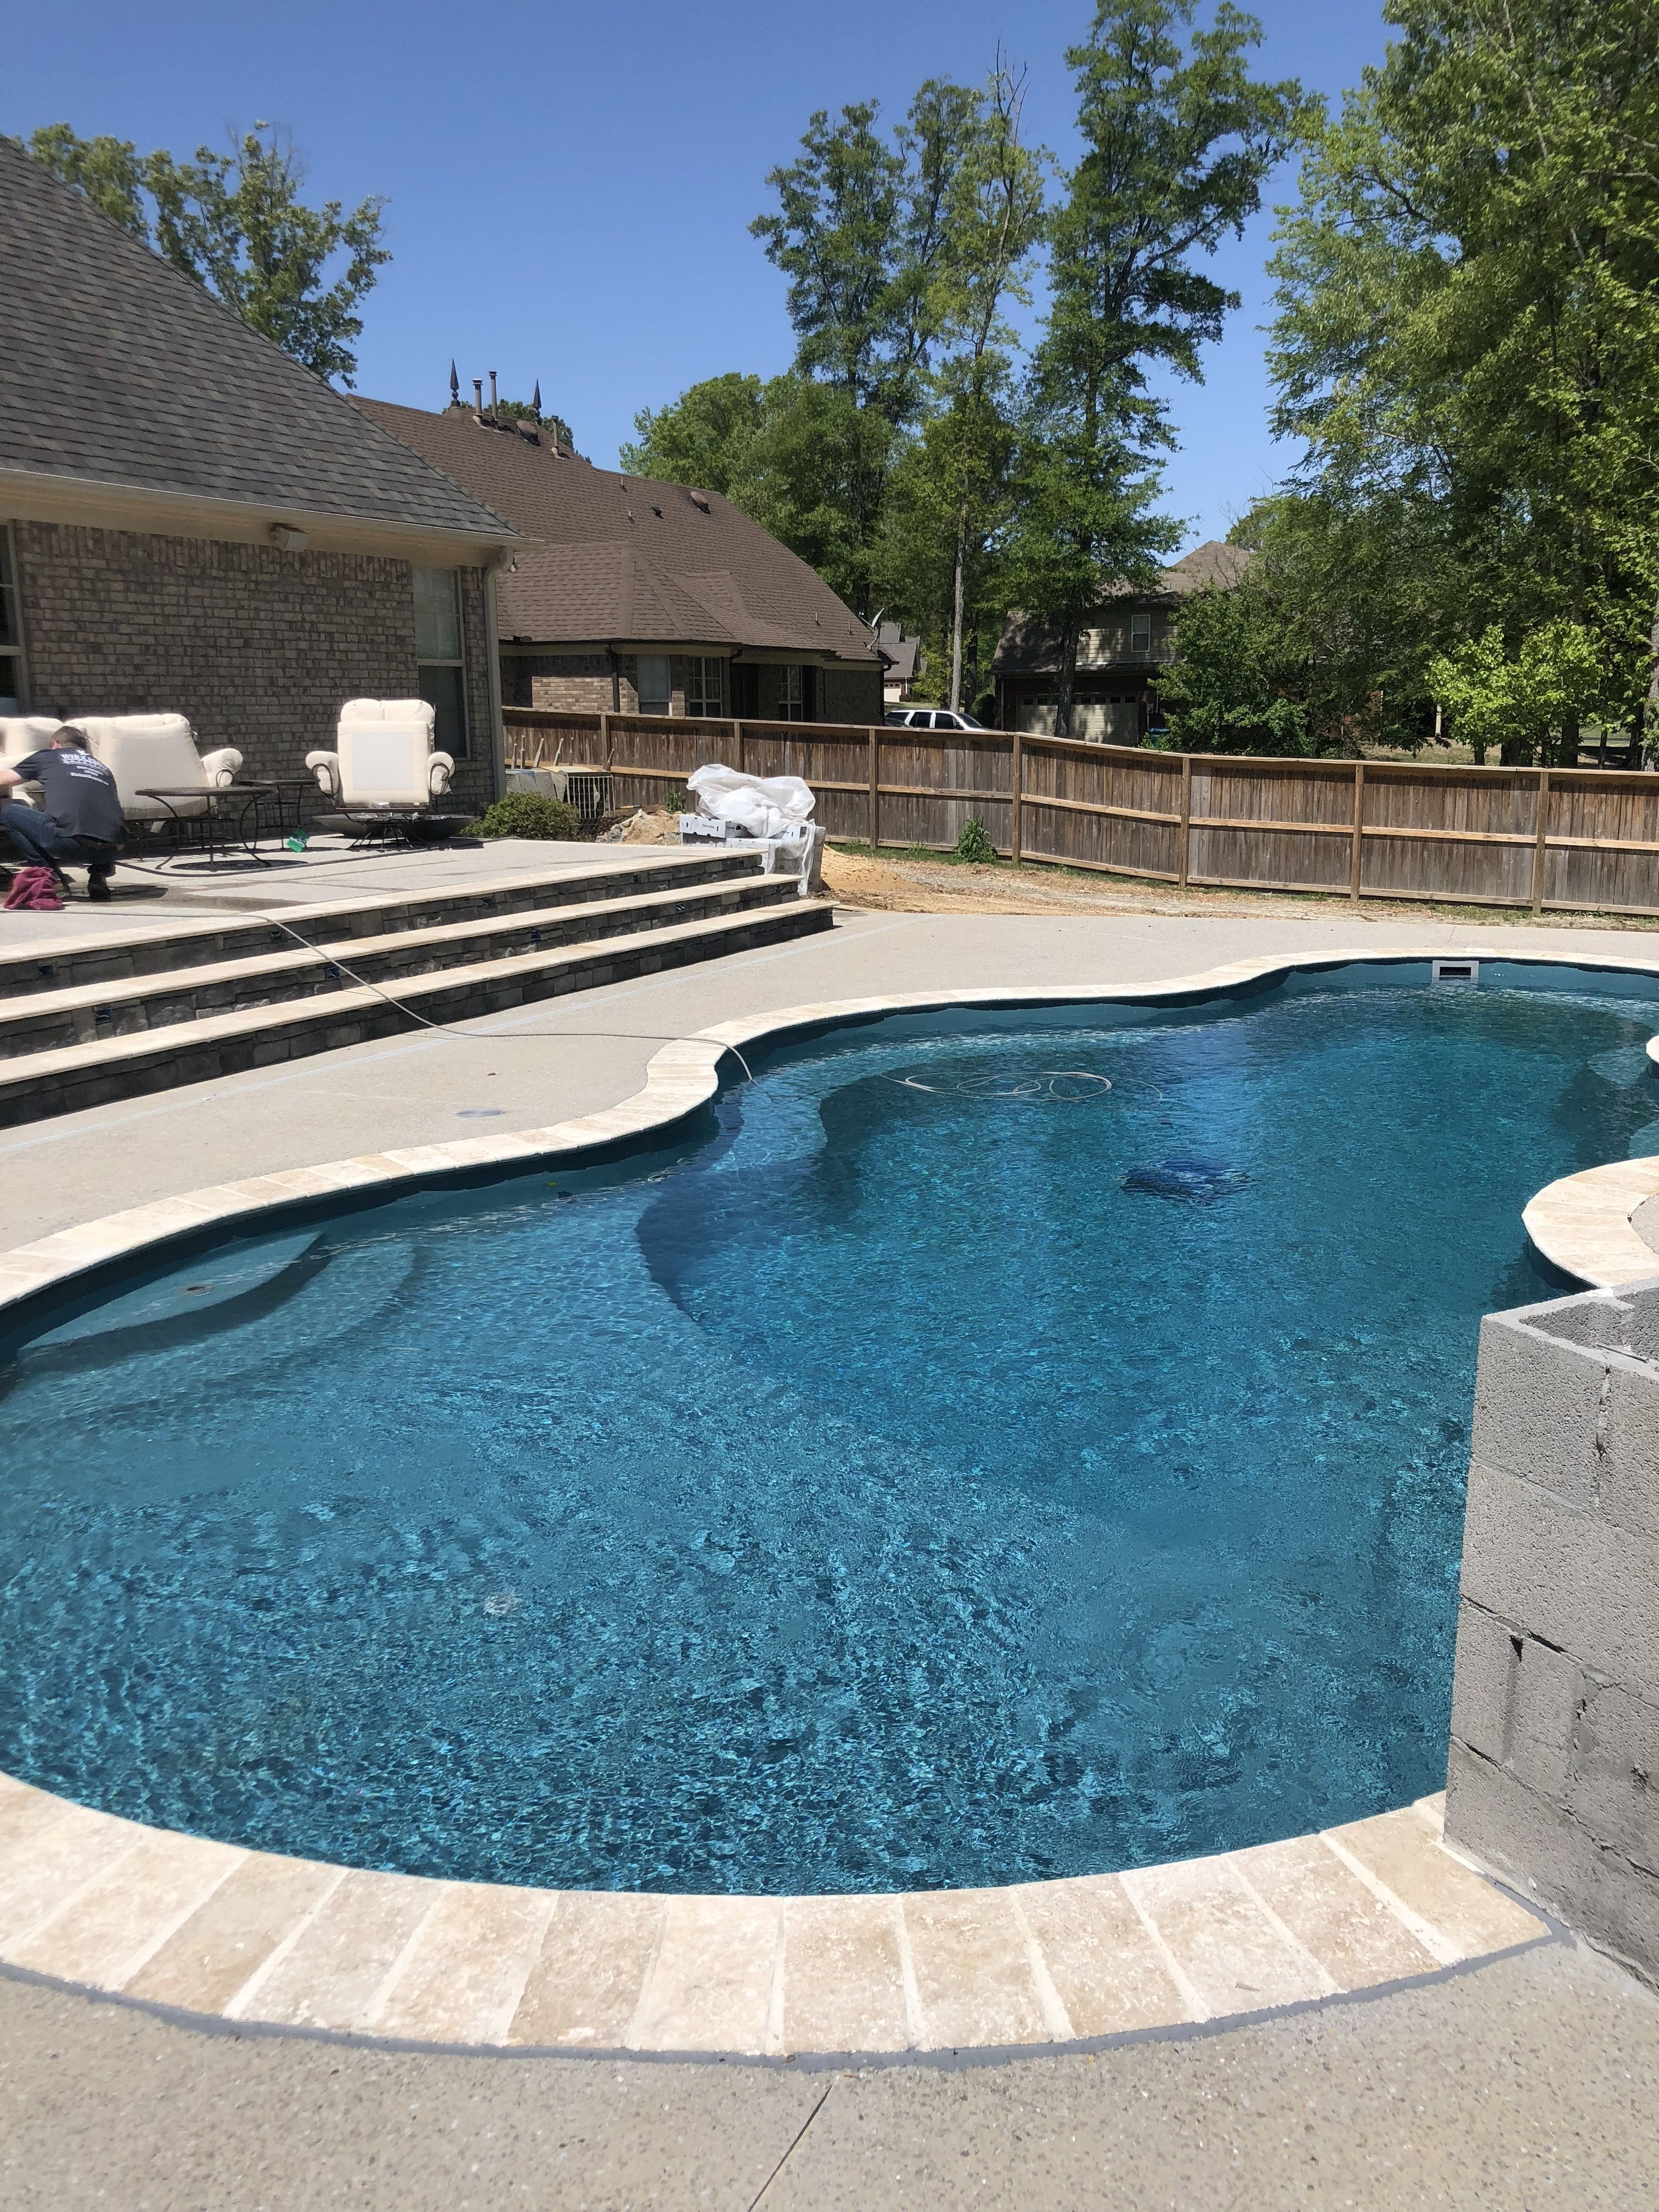 Decorating The House In 2020 Amazing Swimming Pools Swimming Pools Inground Indoor Pool Design